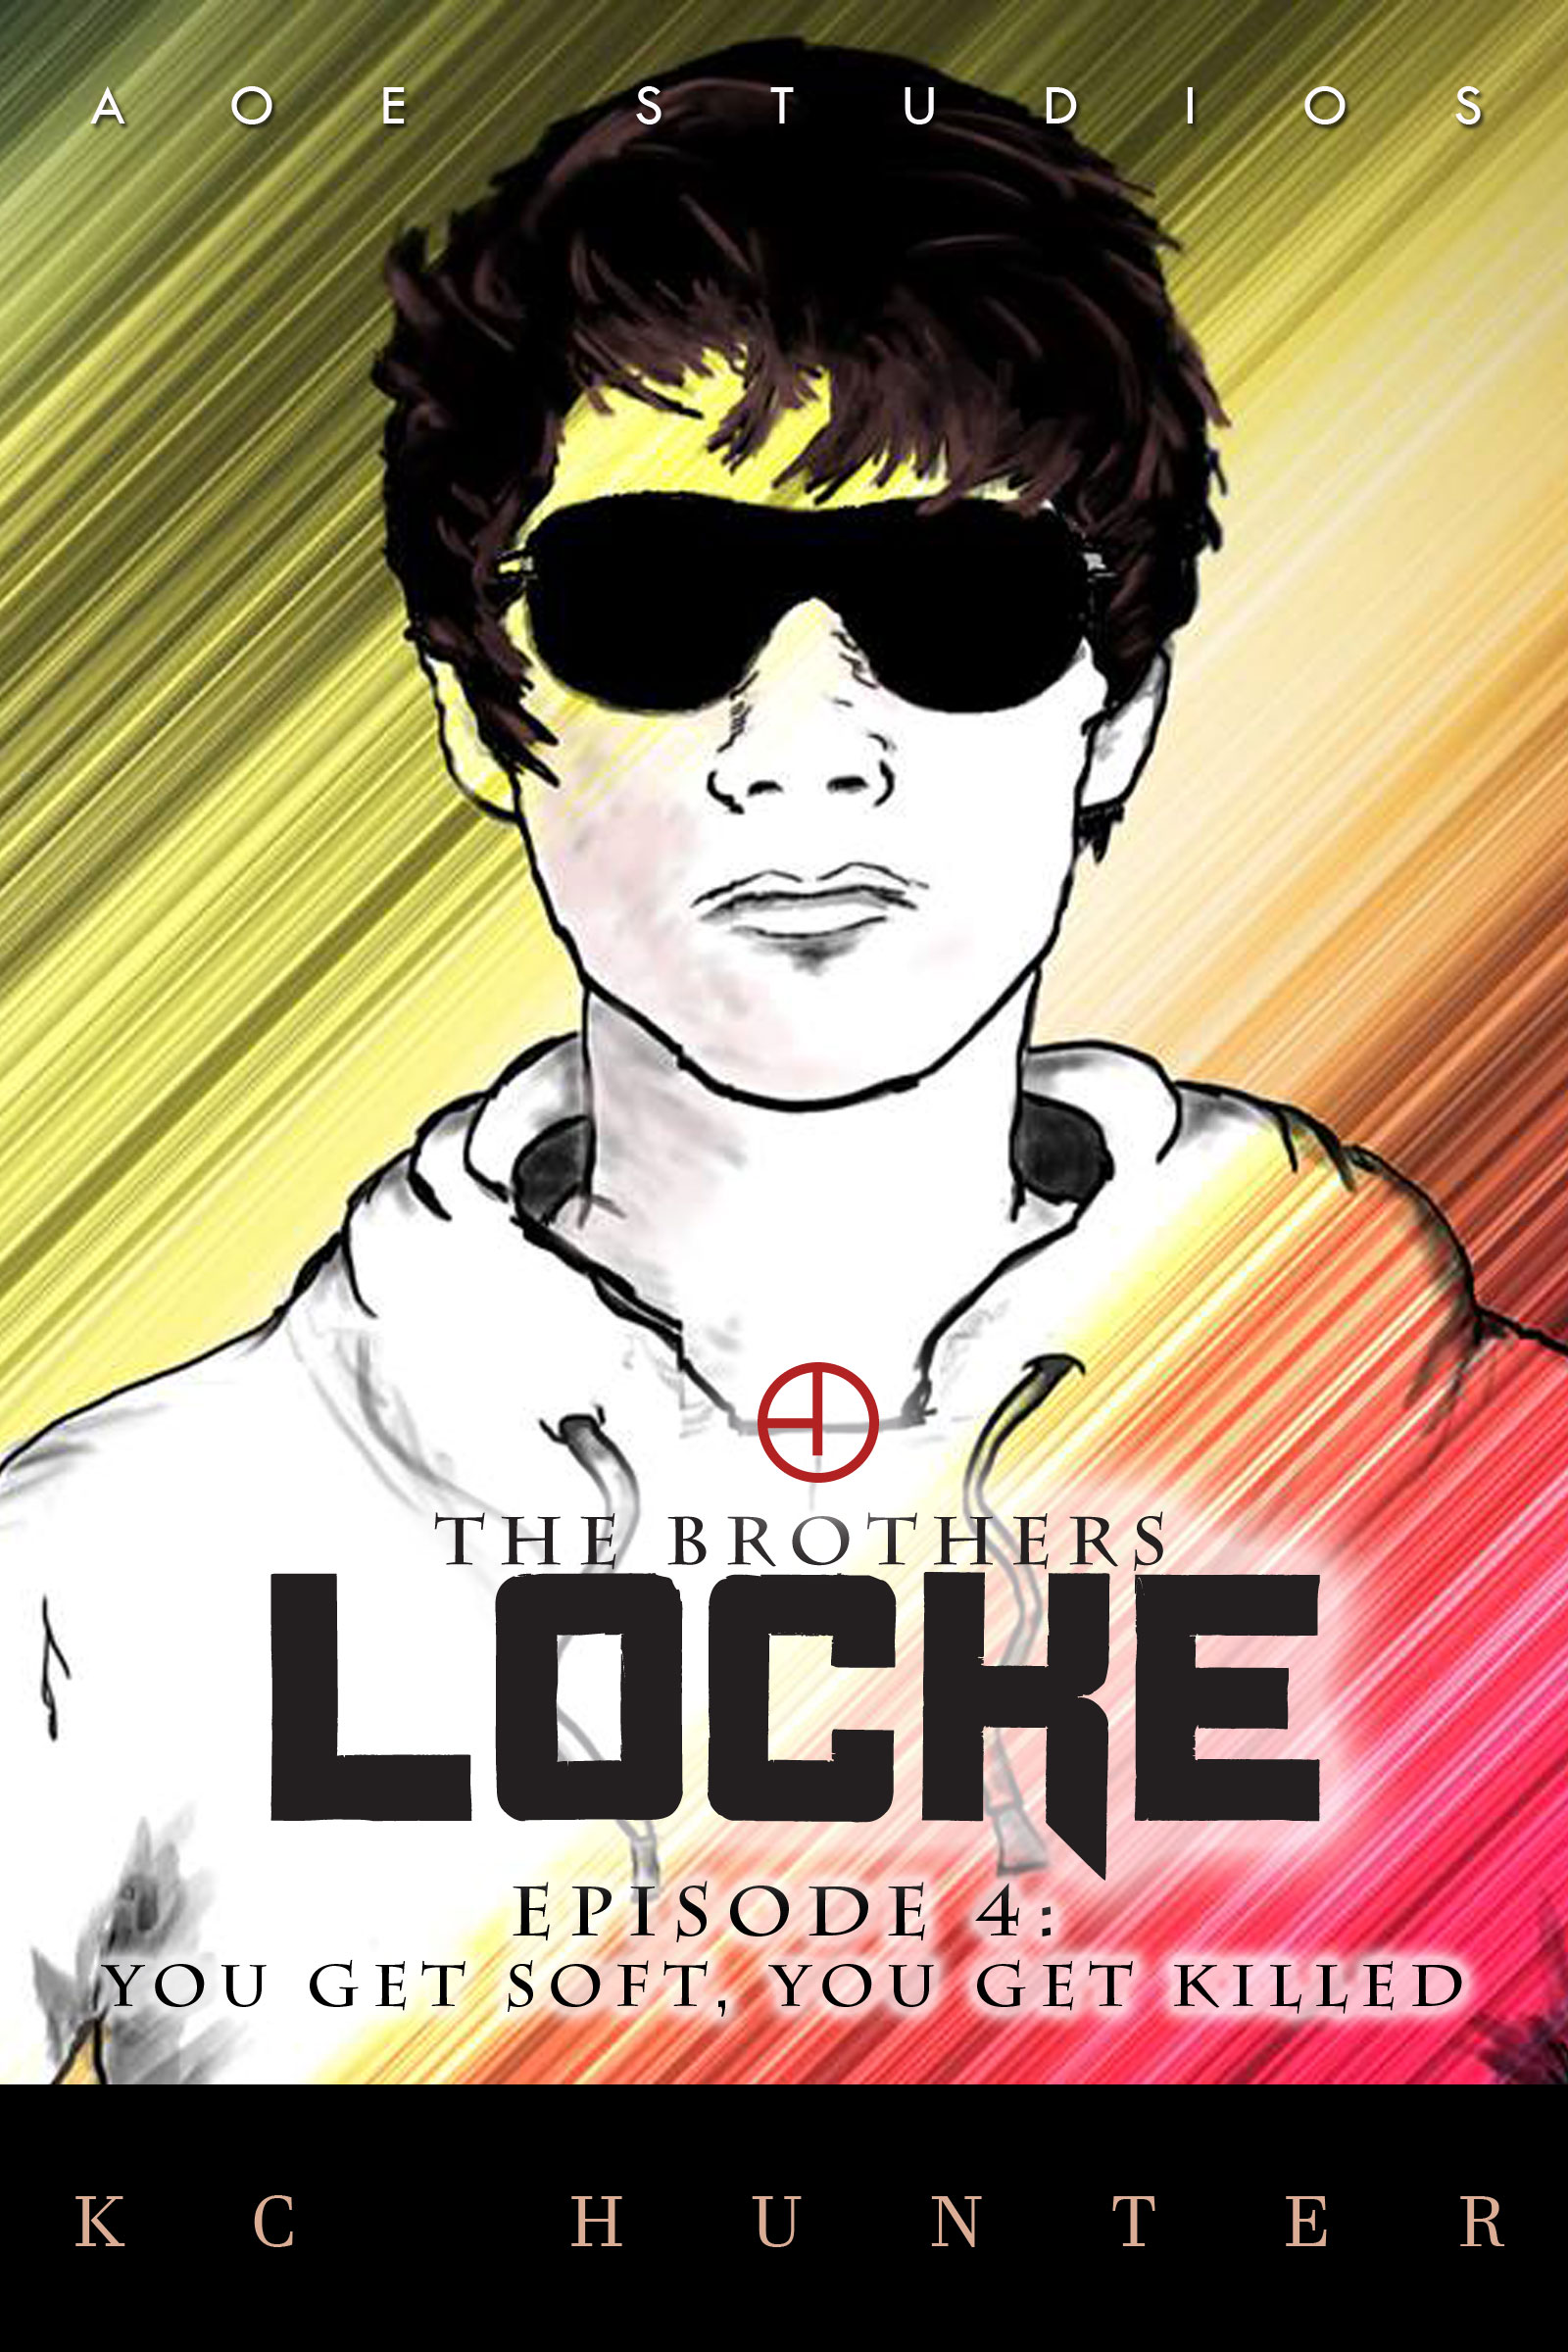 The Brothers Locke Episode 4 Book Cover Image